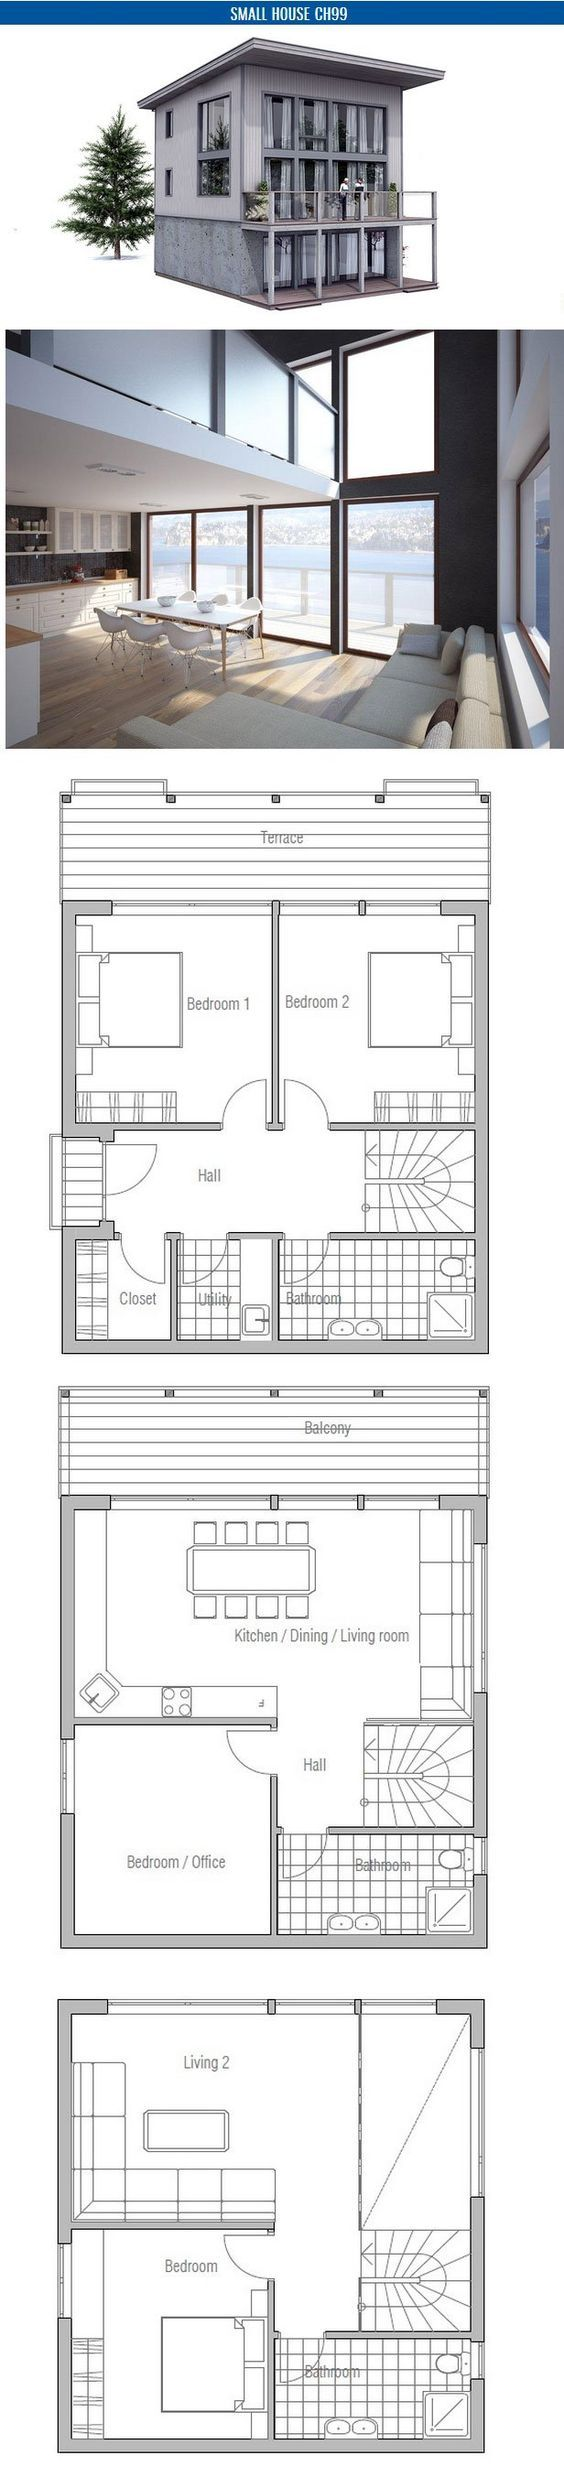 small house plan with four bedrooms simple lines and shapes affordable building budget